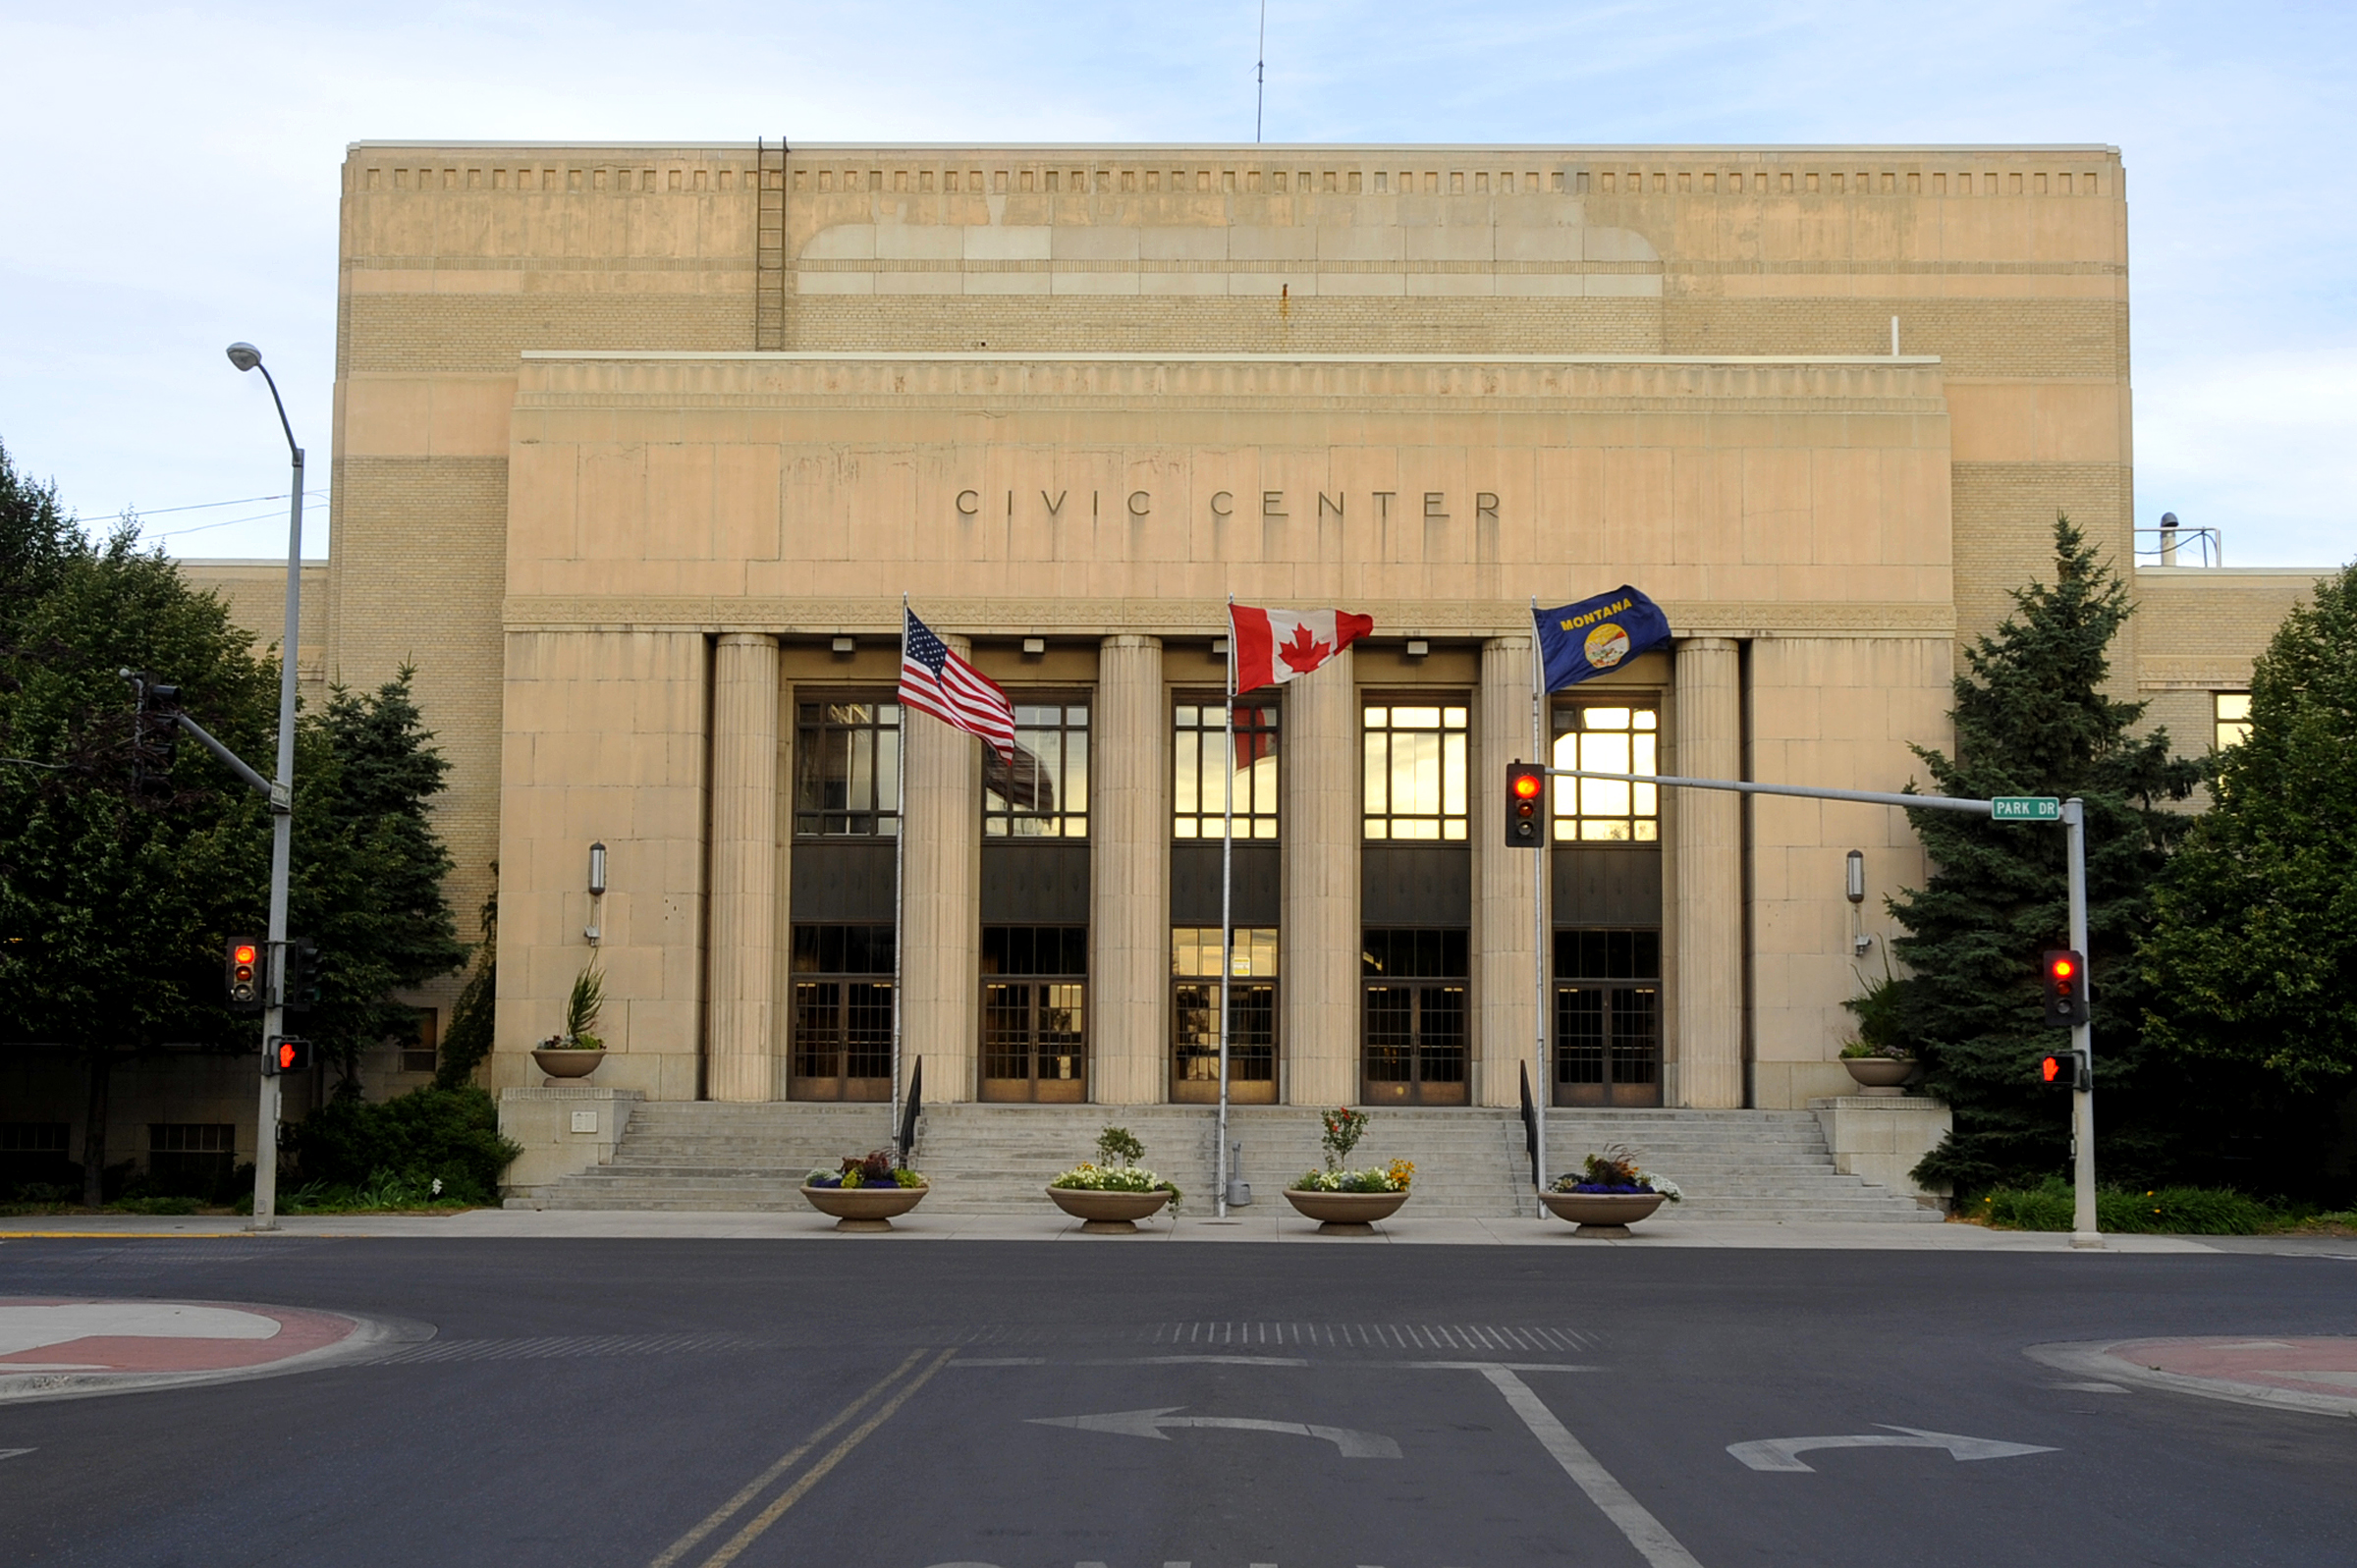 2016 CONFERENCE HEADQUARTERS. The Great Falls Civic Center is an excellent example of the twentieth century Art Deco style on a monumental scale. The Civic Center was built in the 1930s under President Franklin Delano Roosevelt's Works Progress Administration. Photo provided by City of Great Falls.